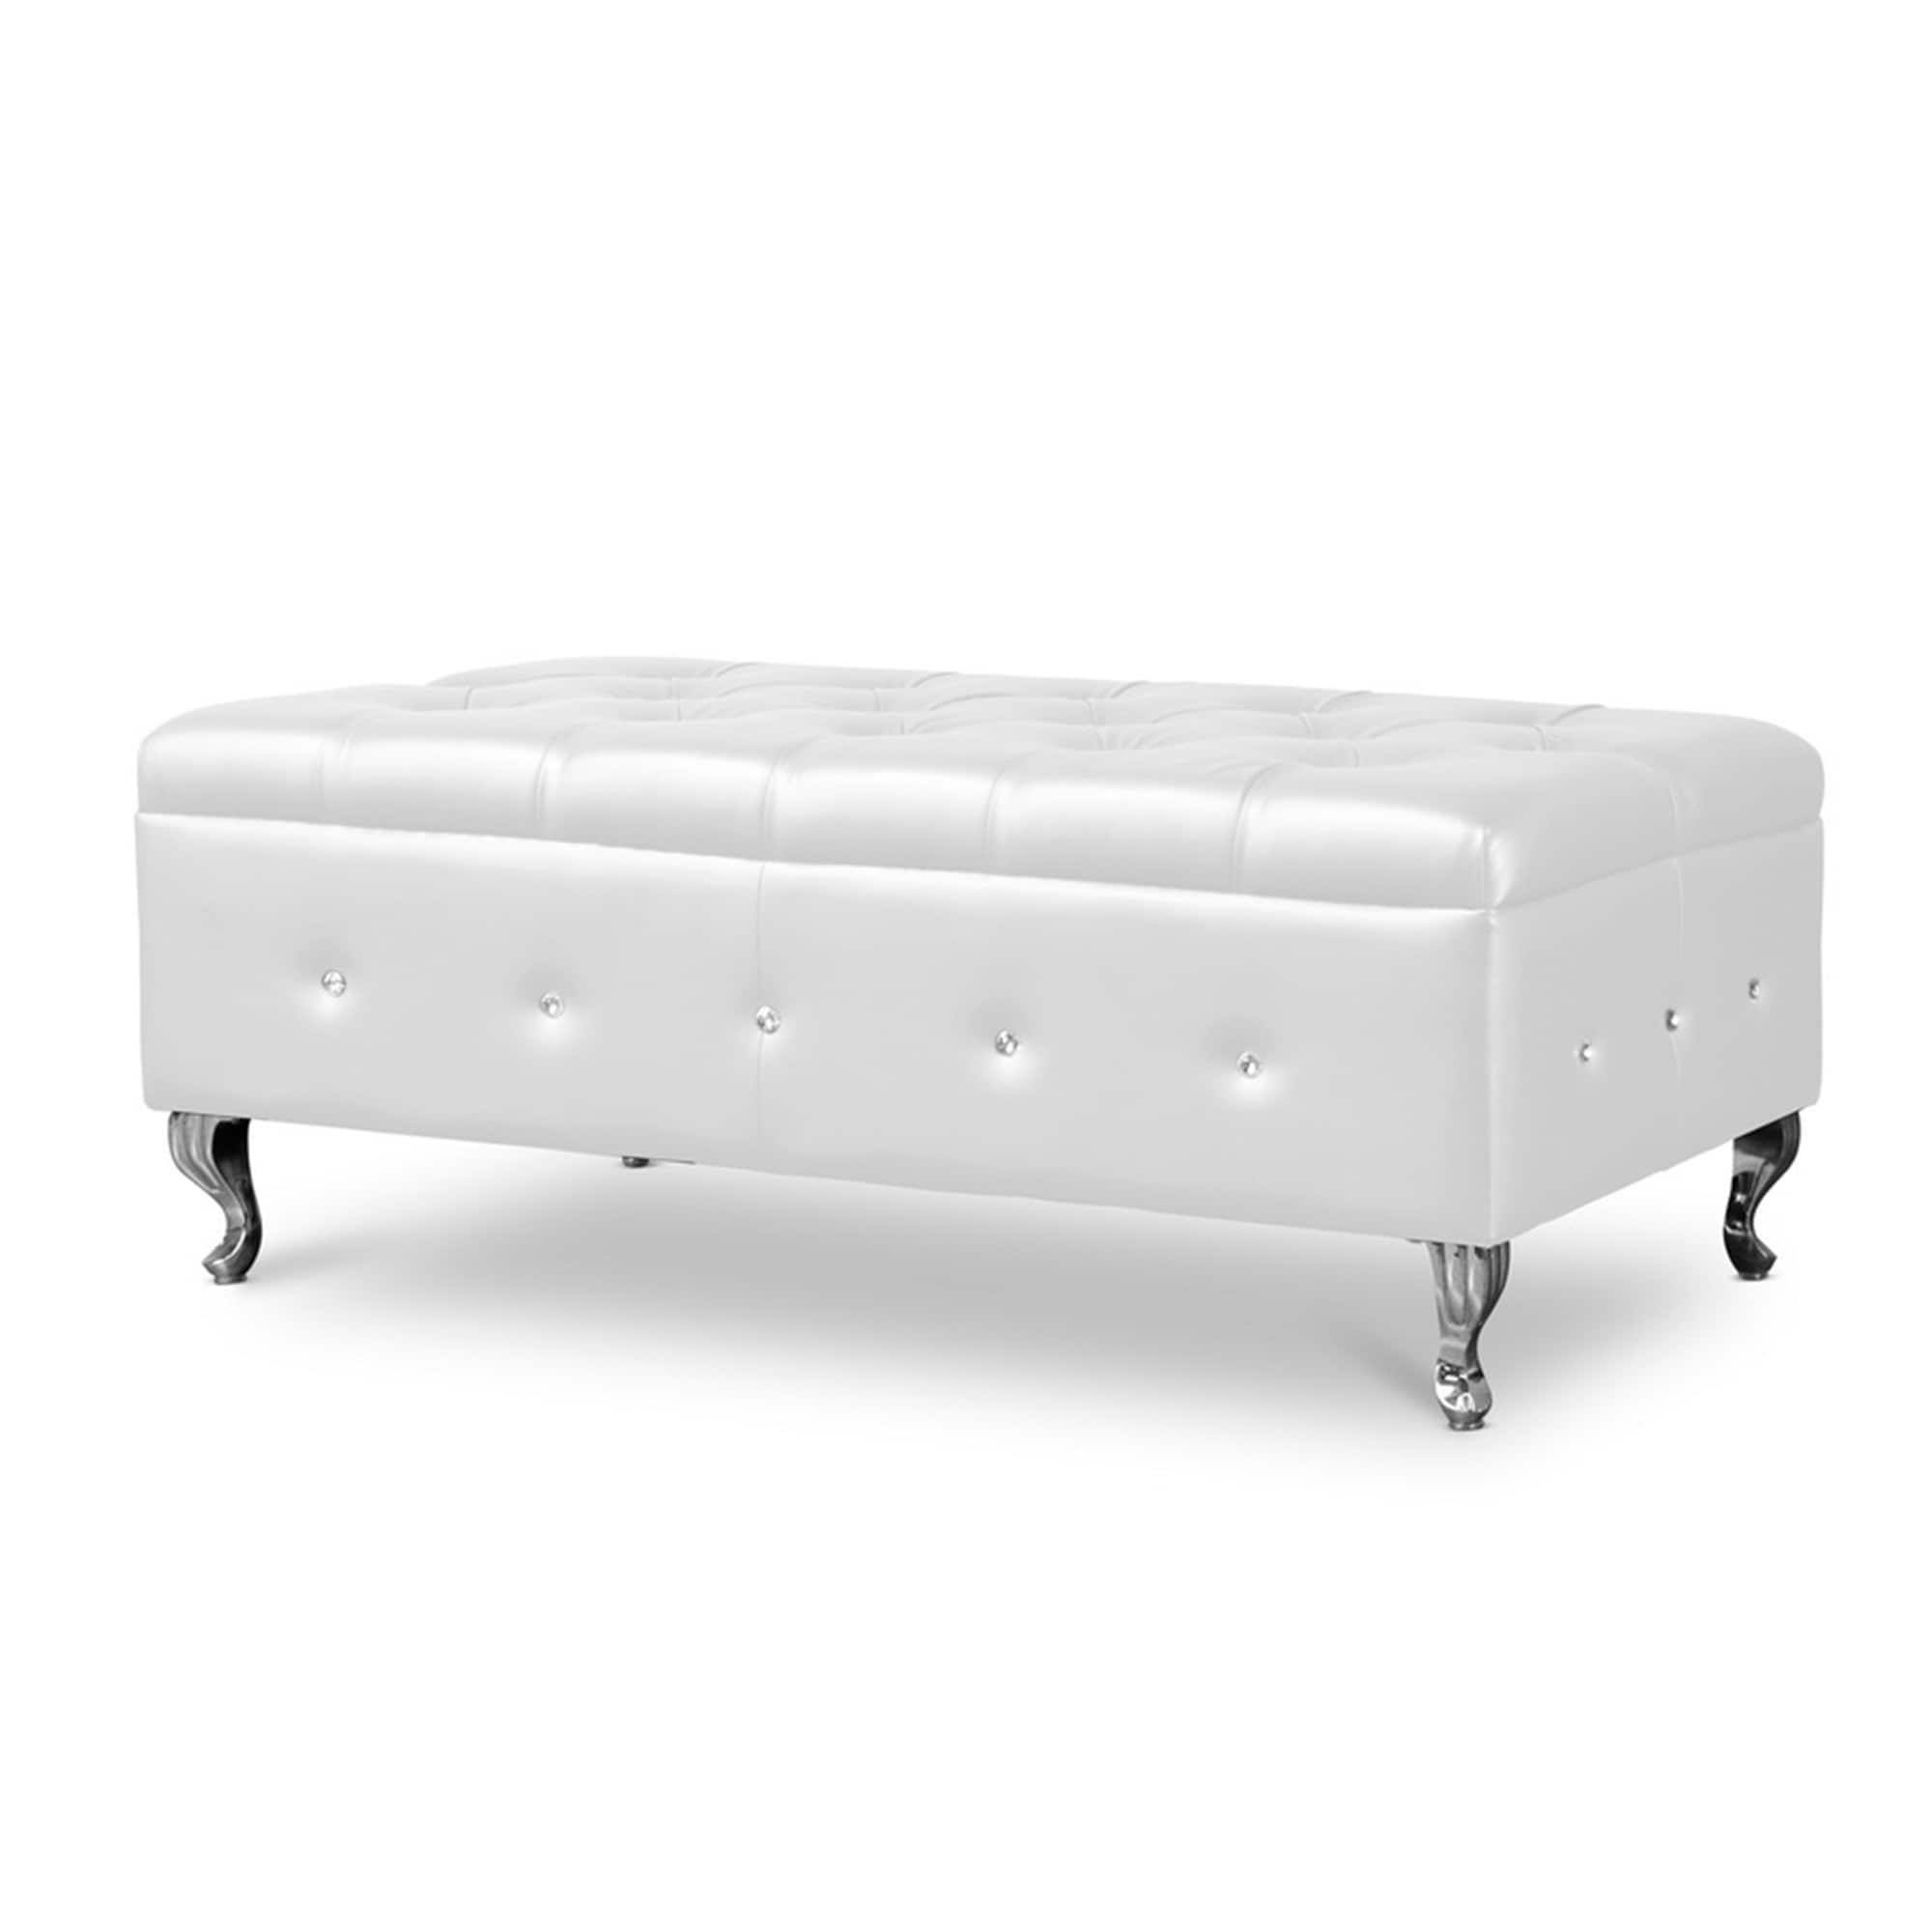 modern bedroom bench. Baxton Studio Brighton Button Tufted Upholstered Modern Bedroom Bench In White - Free Shipping Today Overstock.com 16765803